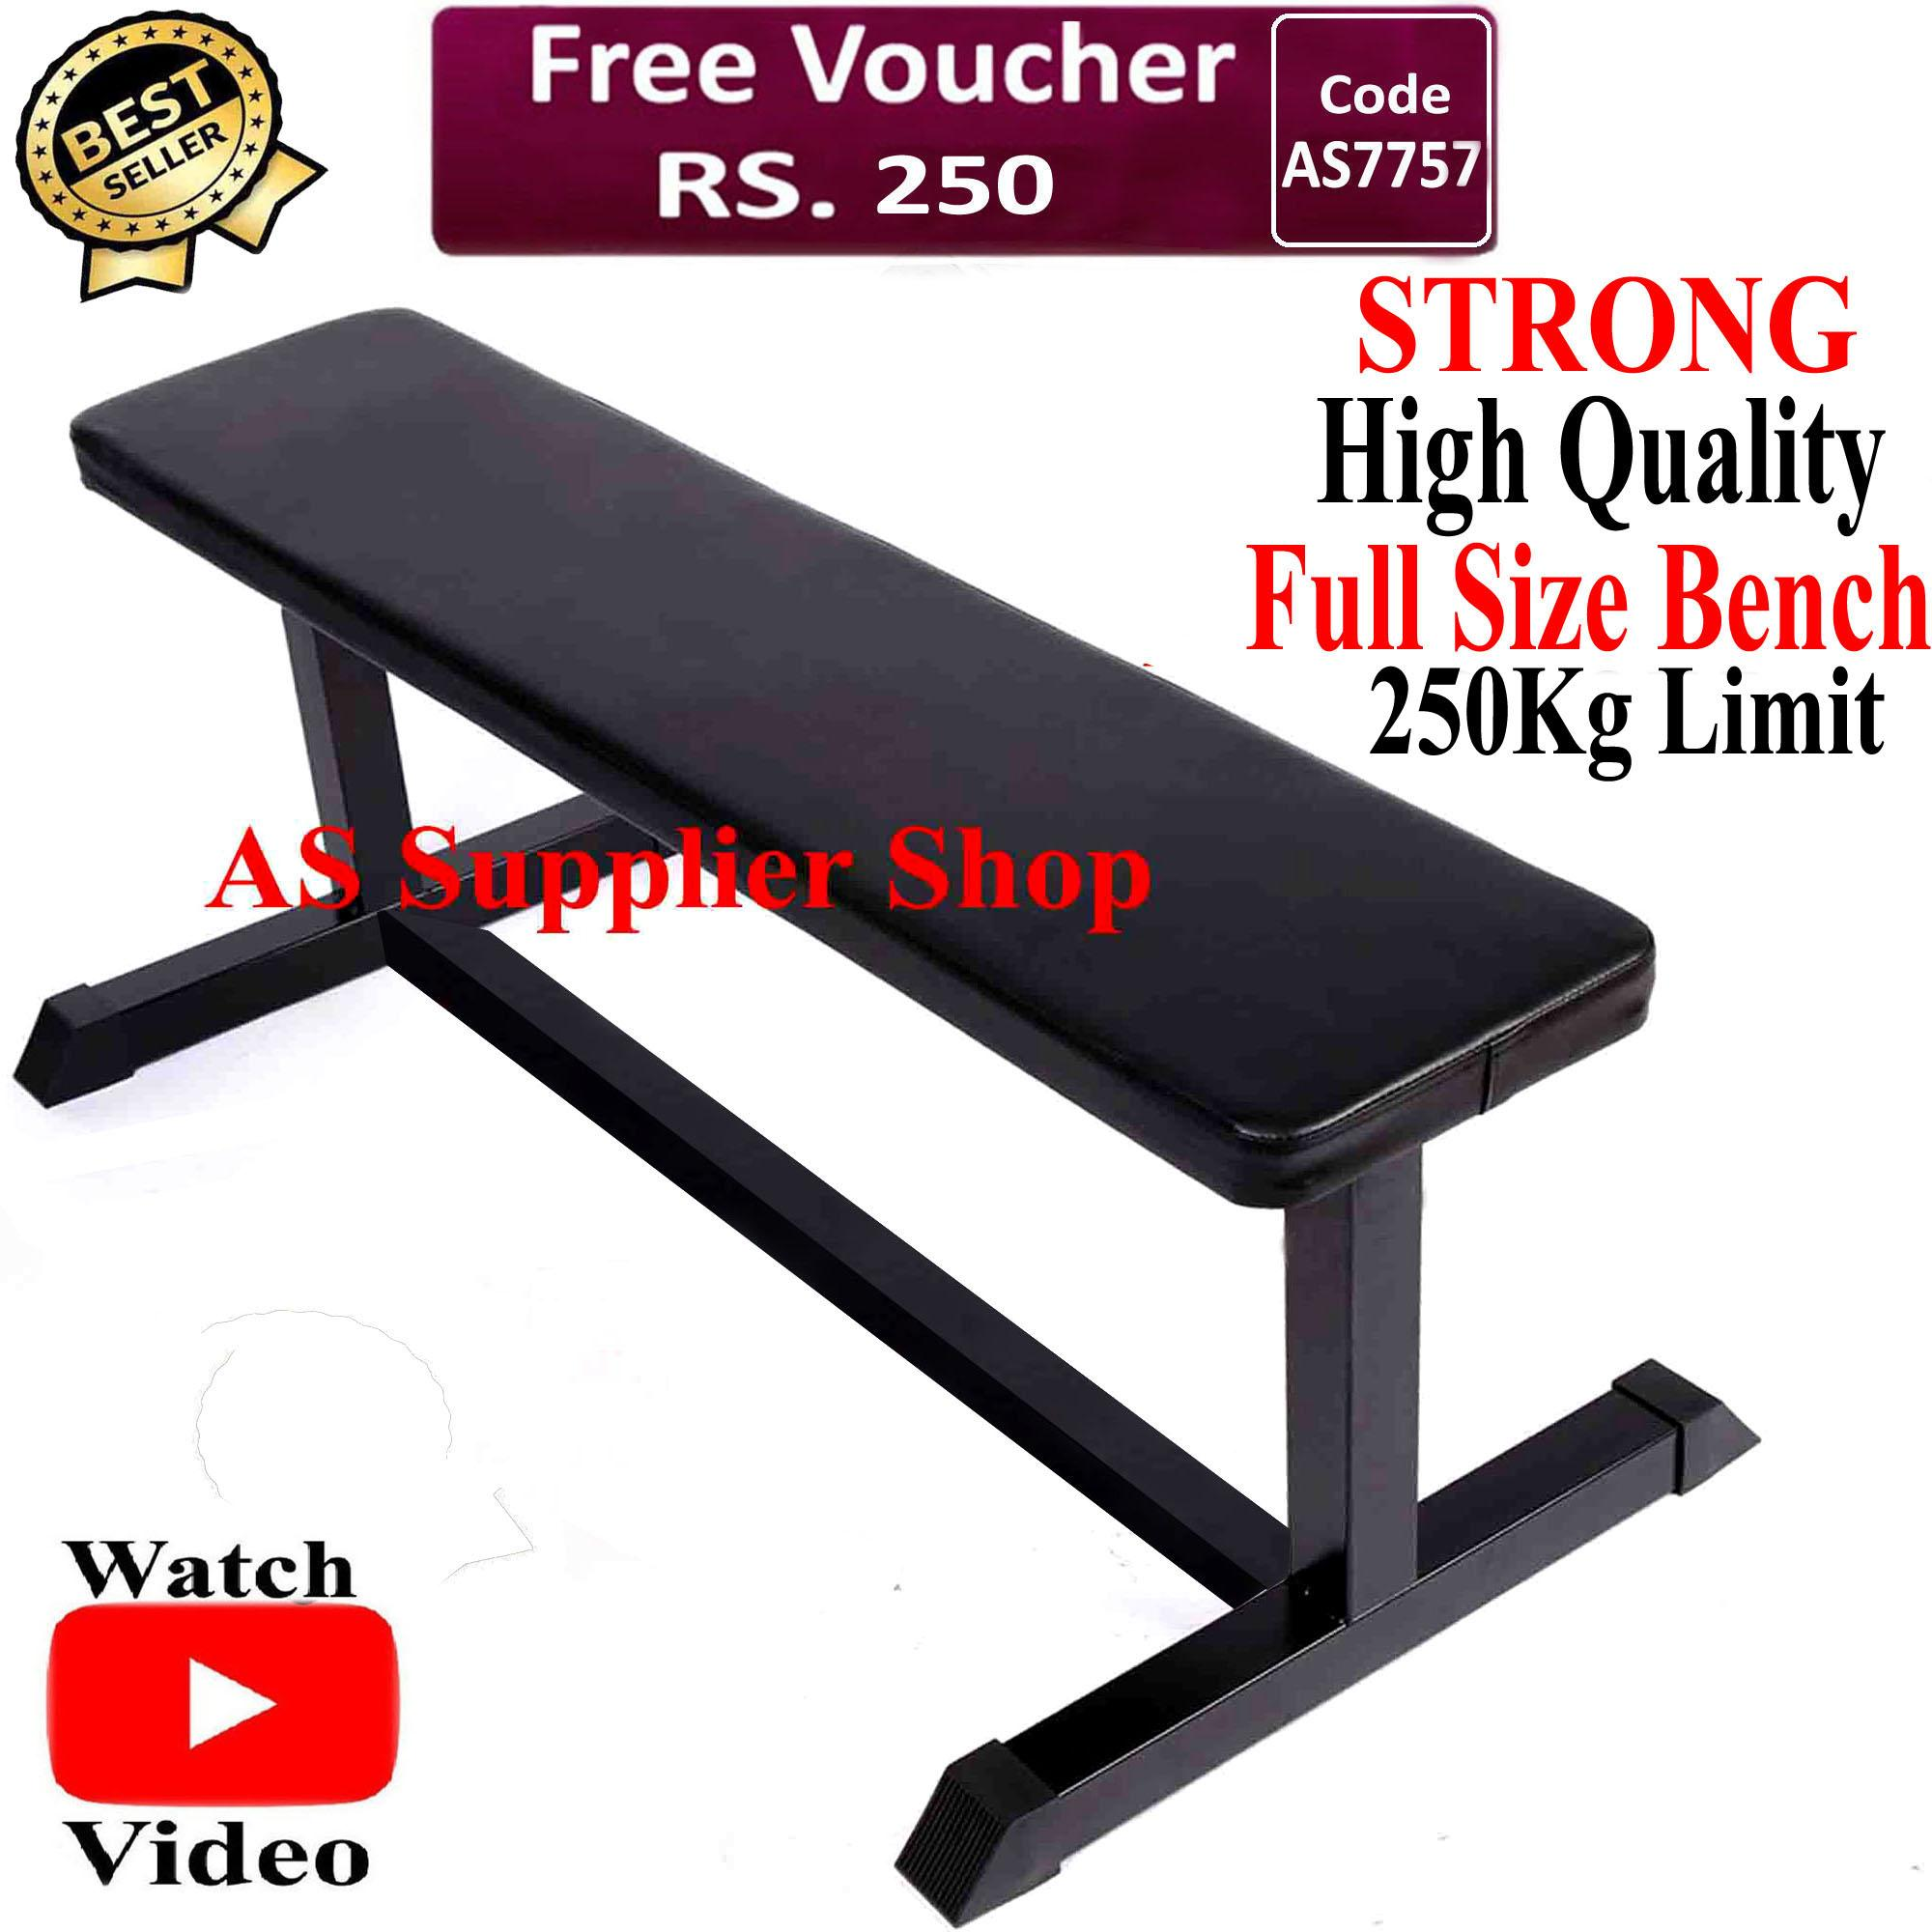 Multi Exercise Flat Chest Bench Press Straight Chest Bench Press Non Adjustable Simple Chest Bench Press Chest Exercise Bench Press Weight Lifting Bench Press Body Building Bench Press Home Gym Dumbells Chest Workout Bench Press Gym Equipment